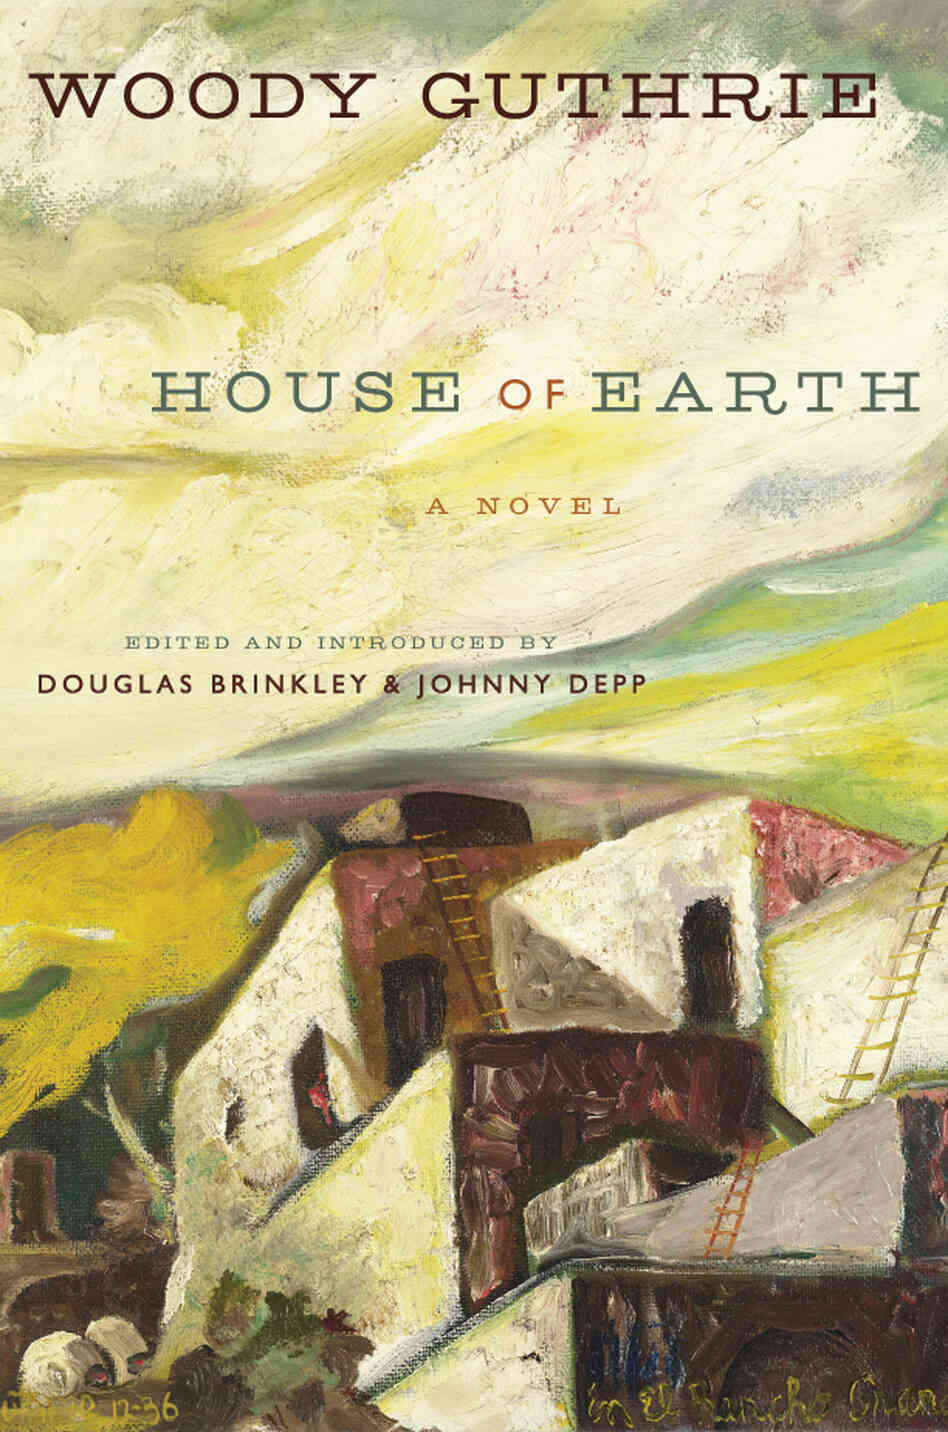 The cover of House of Earth is an oil painting that Guthrie made in 1936 called In El Rancho Grande.